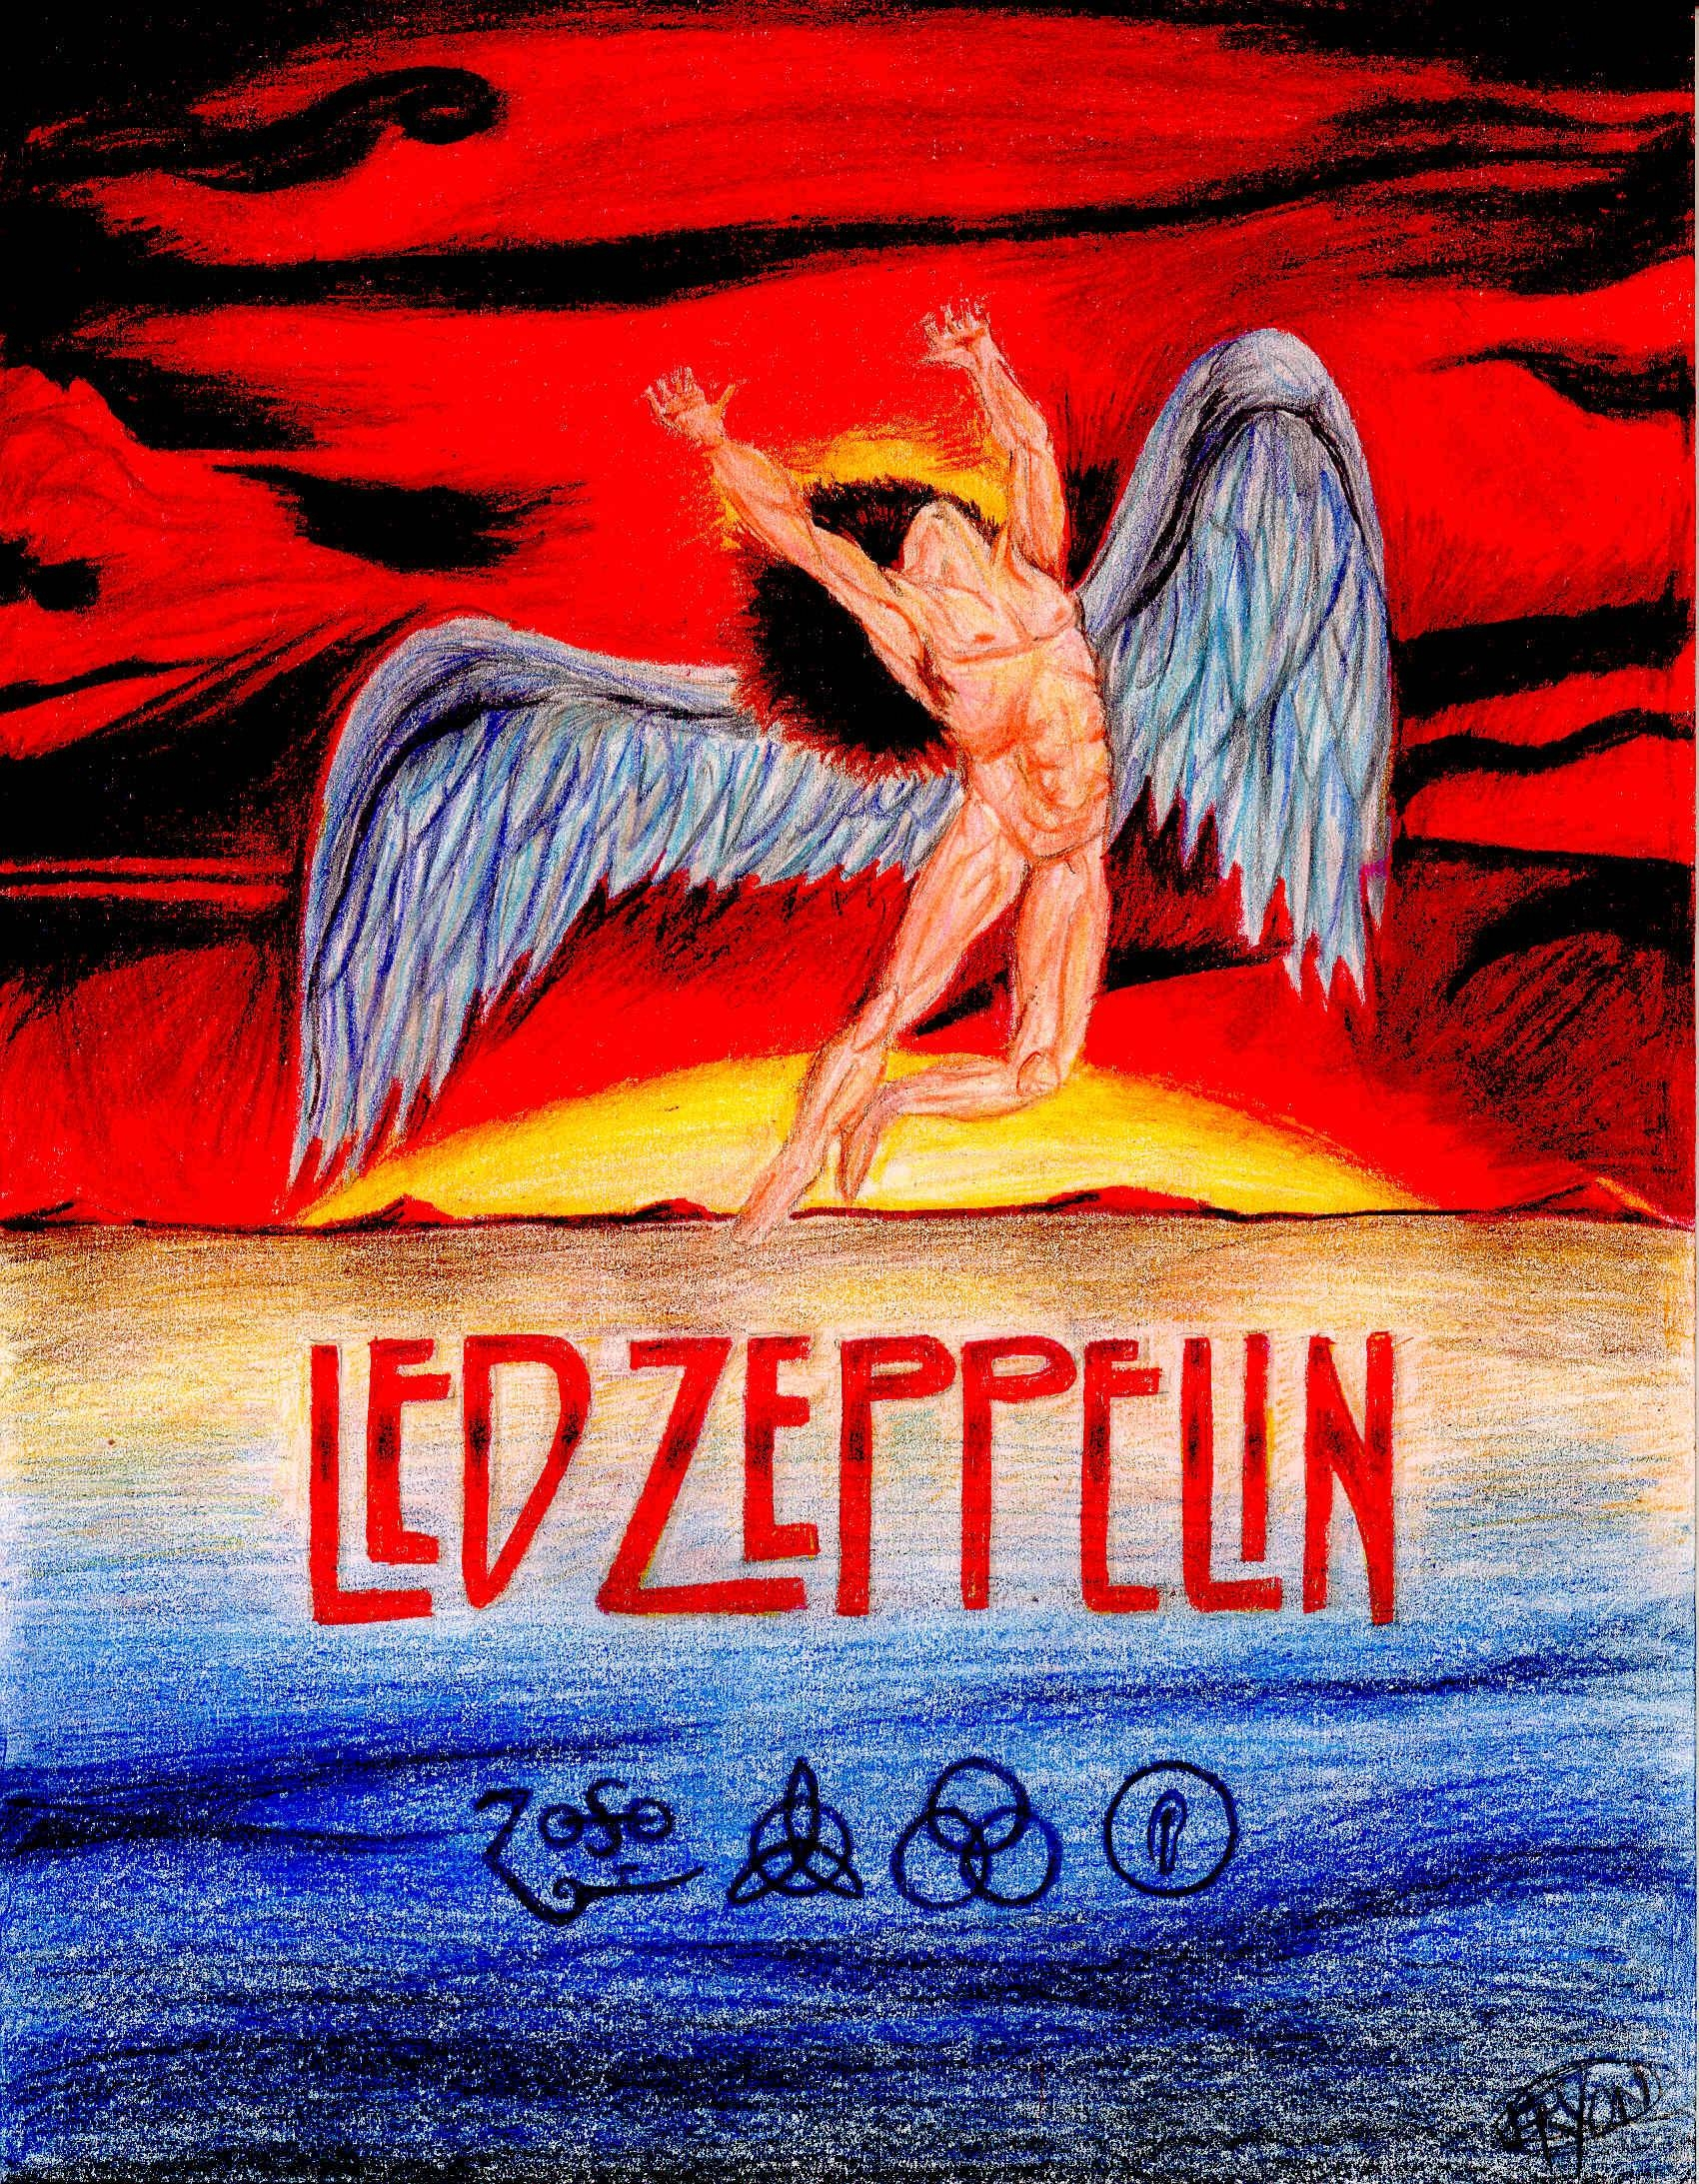 Led Zeppelin – Wings Armourdamnengine On Deviantart Within Latest Led Zeppelin 3D Wall Art (View 13 of 20)